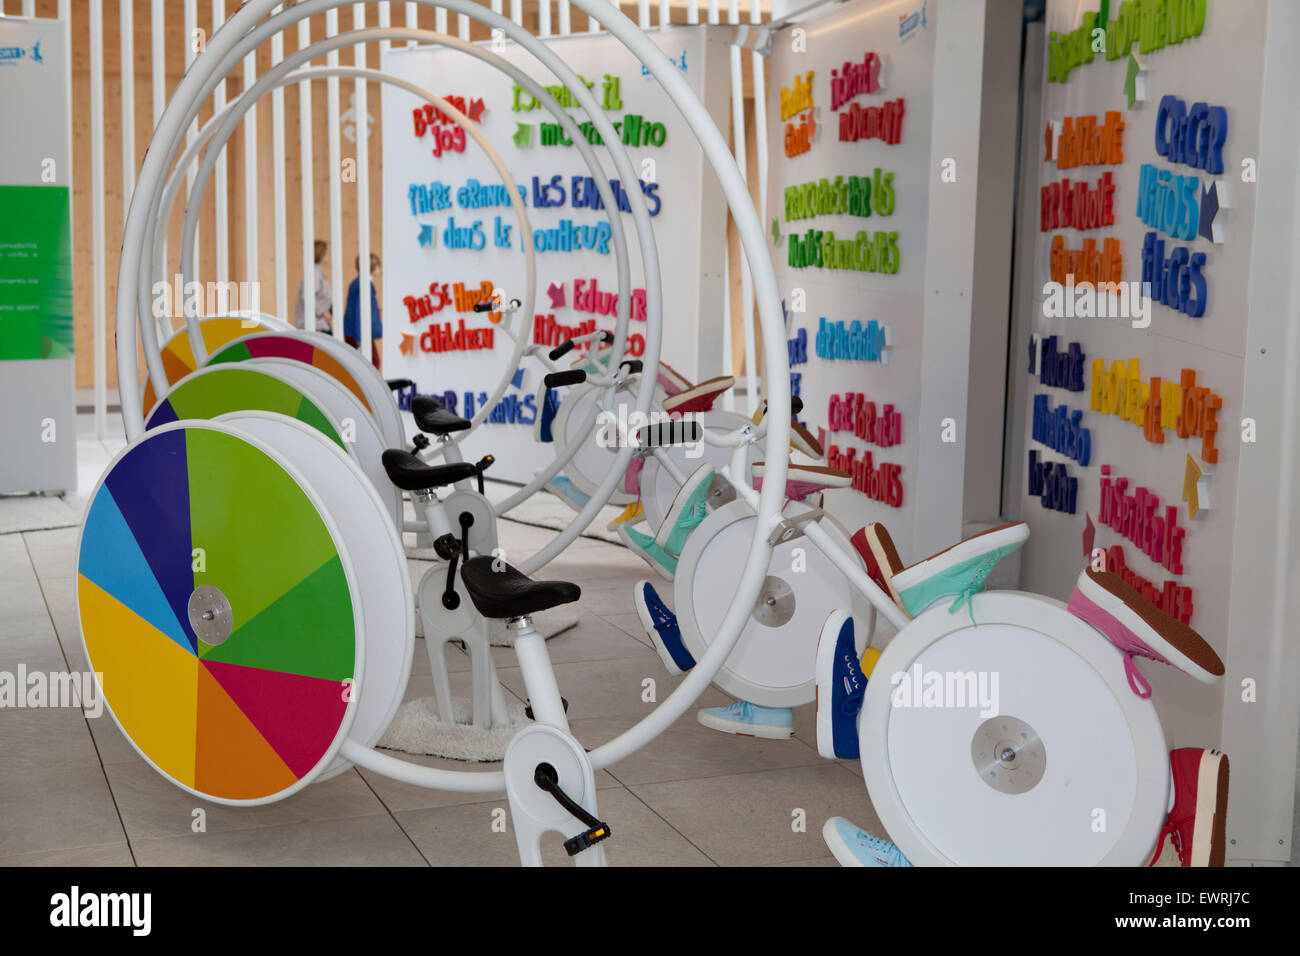 Exhibition Stand Attractions And Games Ideas : Kinder booth at expo milan with activities for young kids